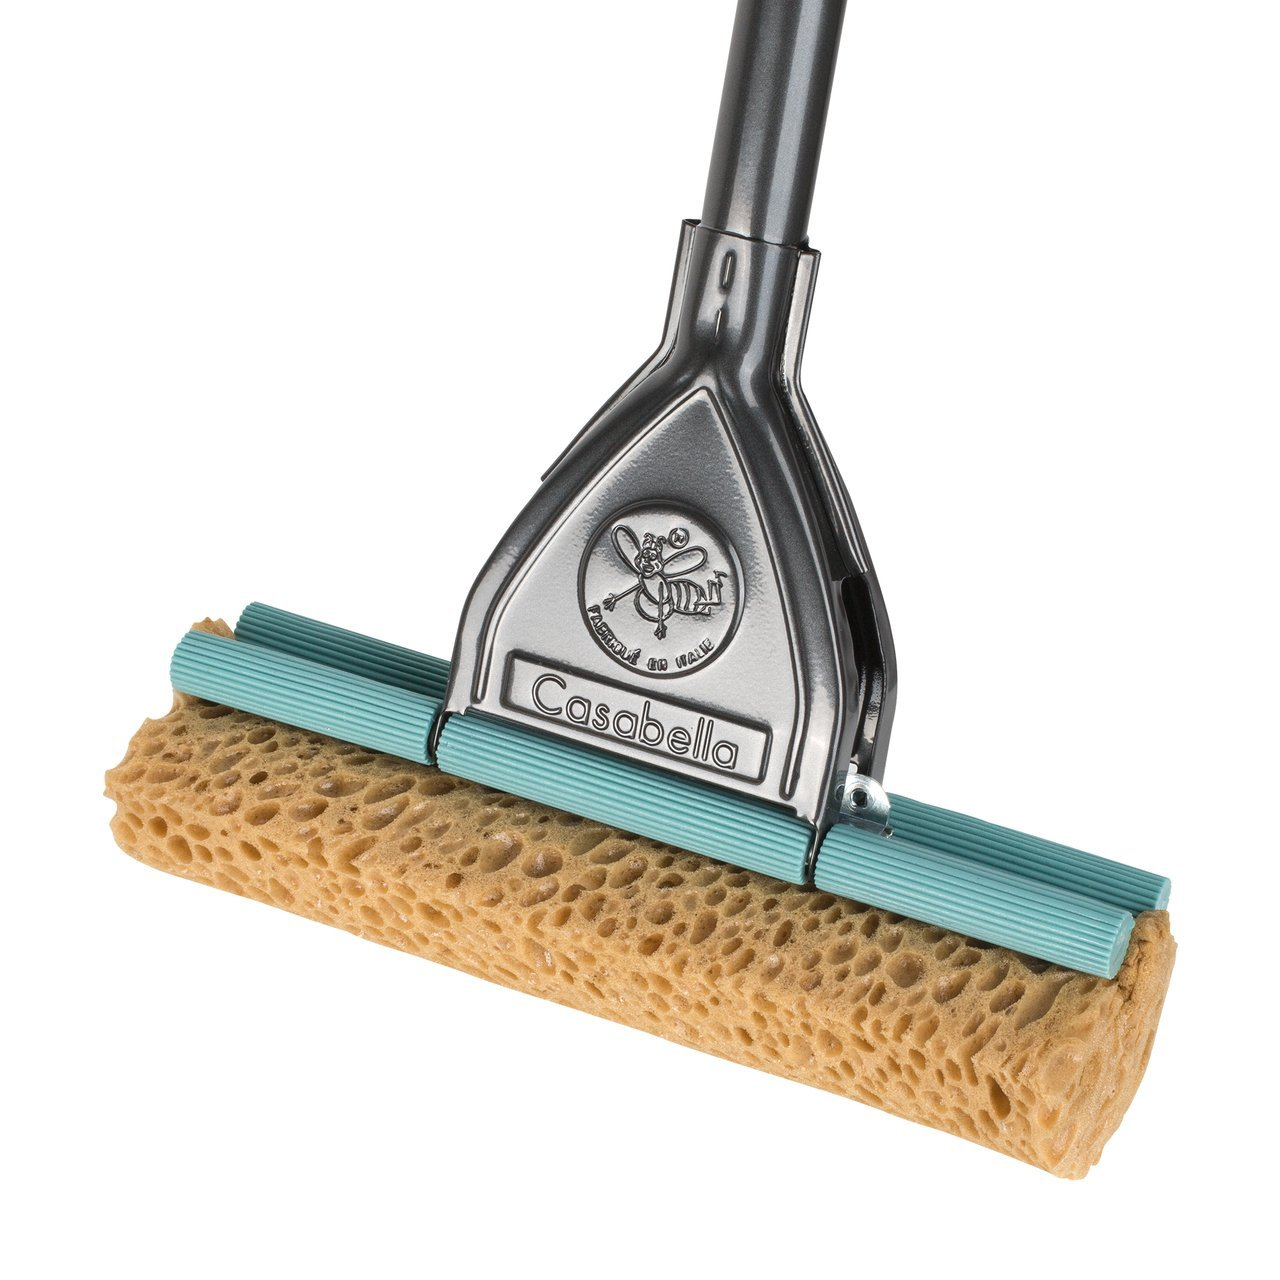 Casabella Original Bee Mop with Refill – Available in 2 Colors